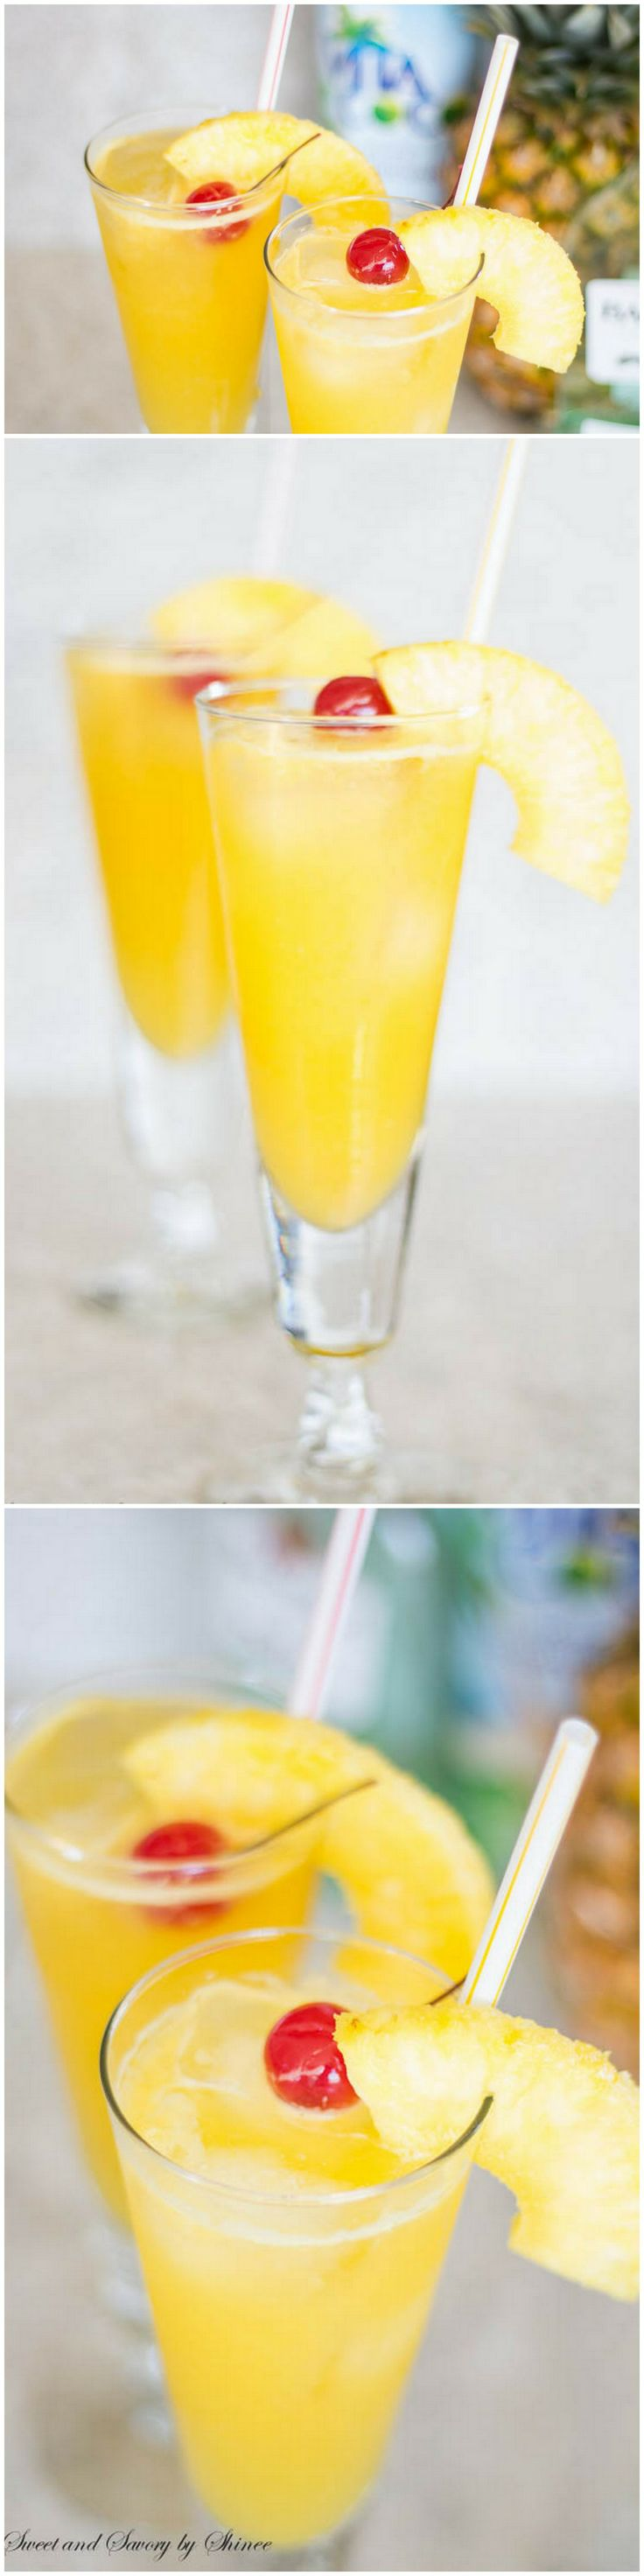 Bubbly, fruity, tropical, this pineapple coconut spritzer is a naturally sweetened thirst-quencher and party-pleaser. ~Sweet and Savory by Shinee